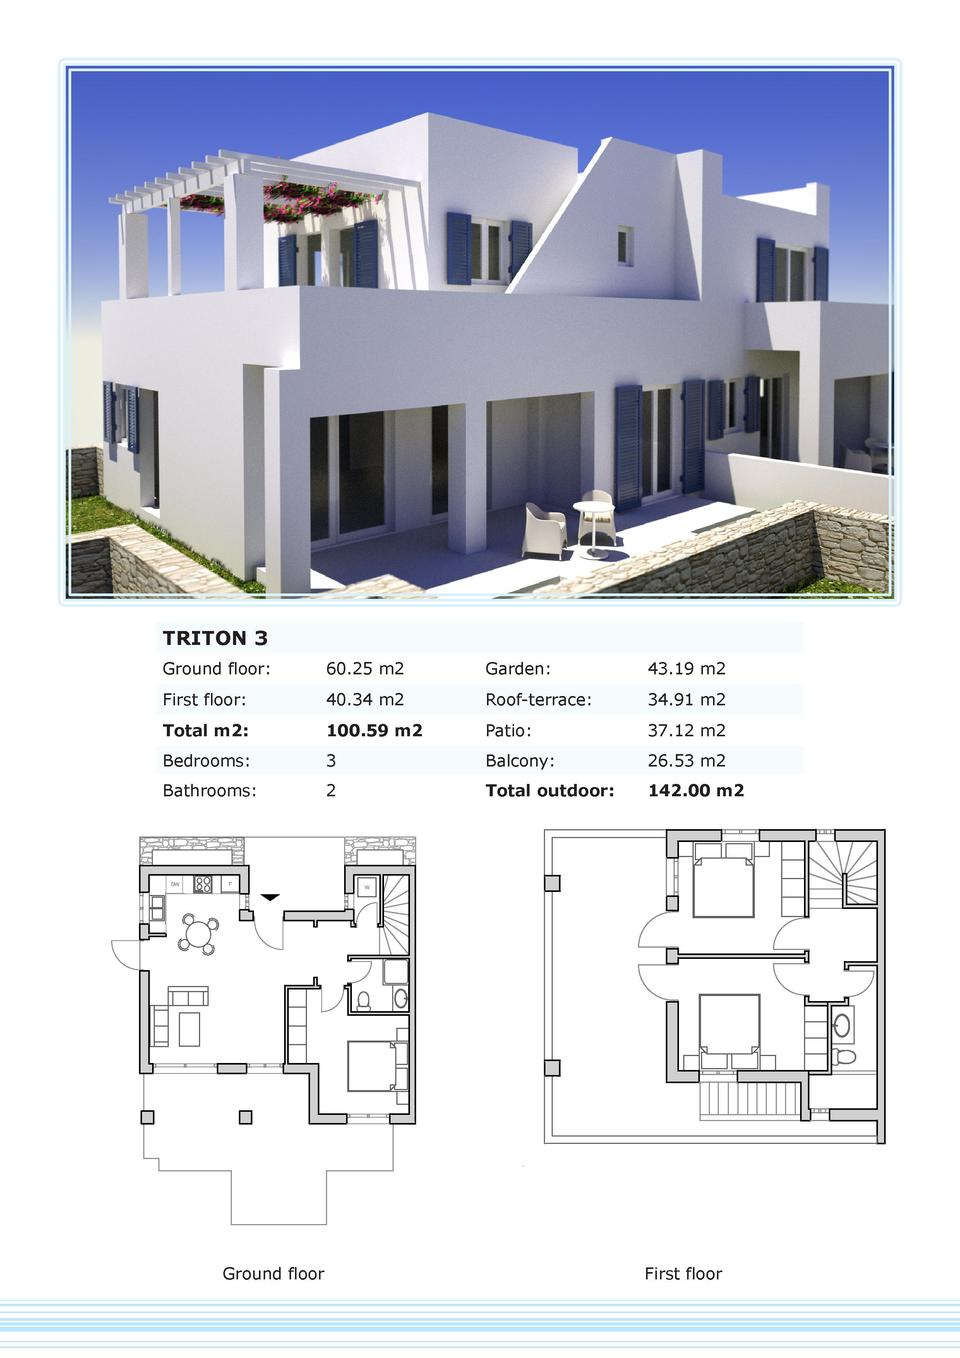 TRITON 3 Ground floor   60.25 m2  Garden   43.19 m2  First floor   40.34 m2  Roof-terrace   34.91 m2  Total m2   100.59 m2...